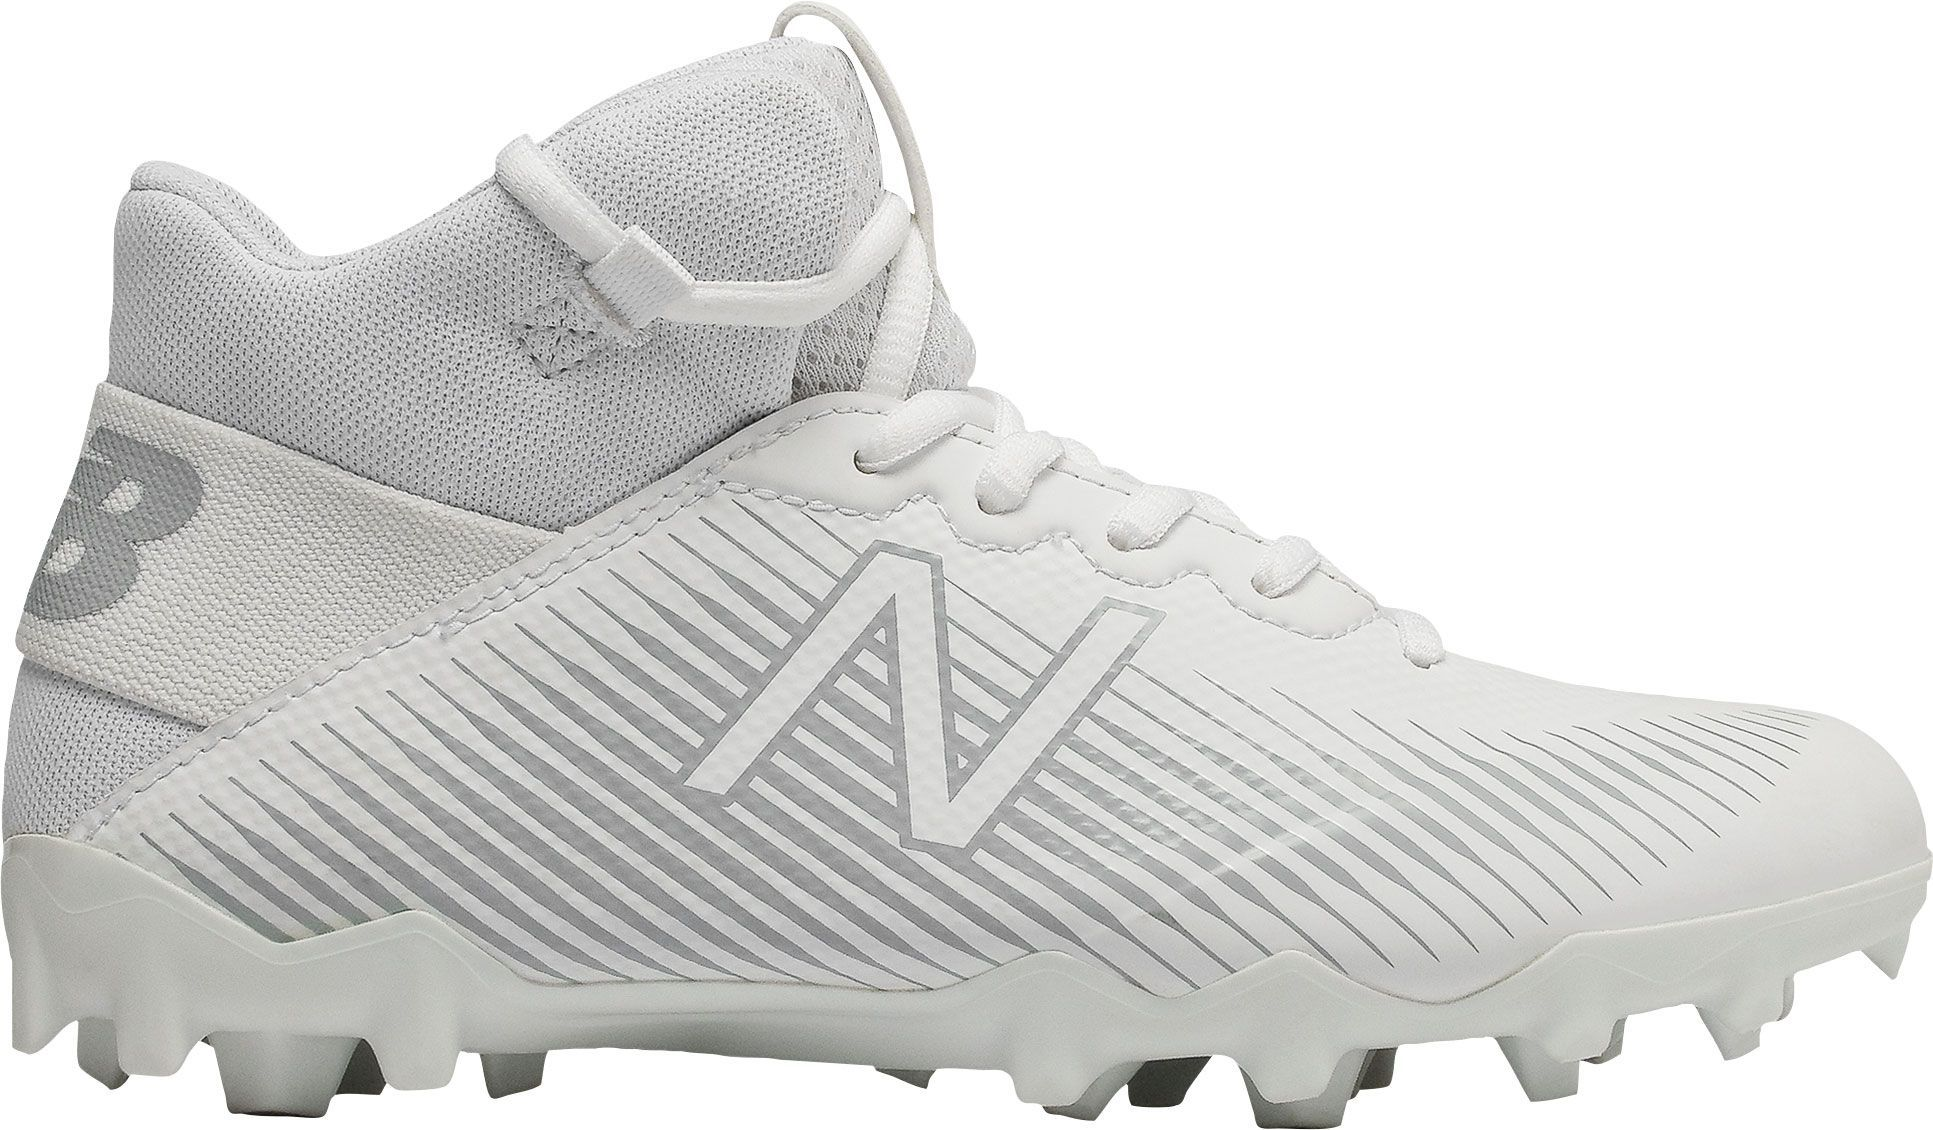 27db40bab740b New Balance Kids' Freeze 2.0 Lacrosse Cleats | Products | Lacrosse ...